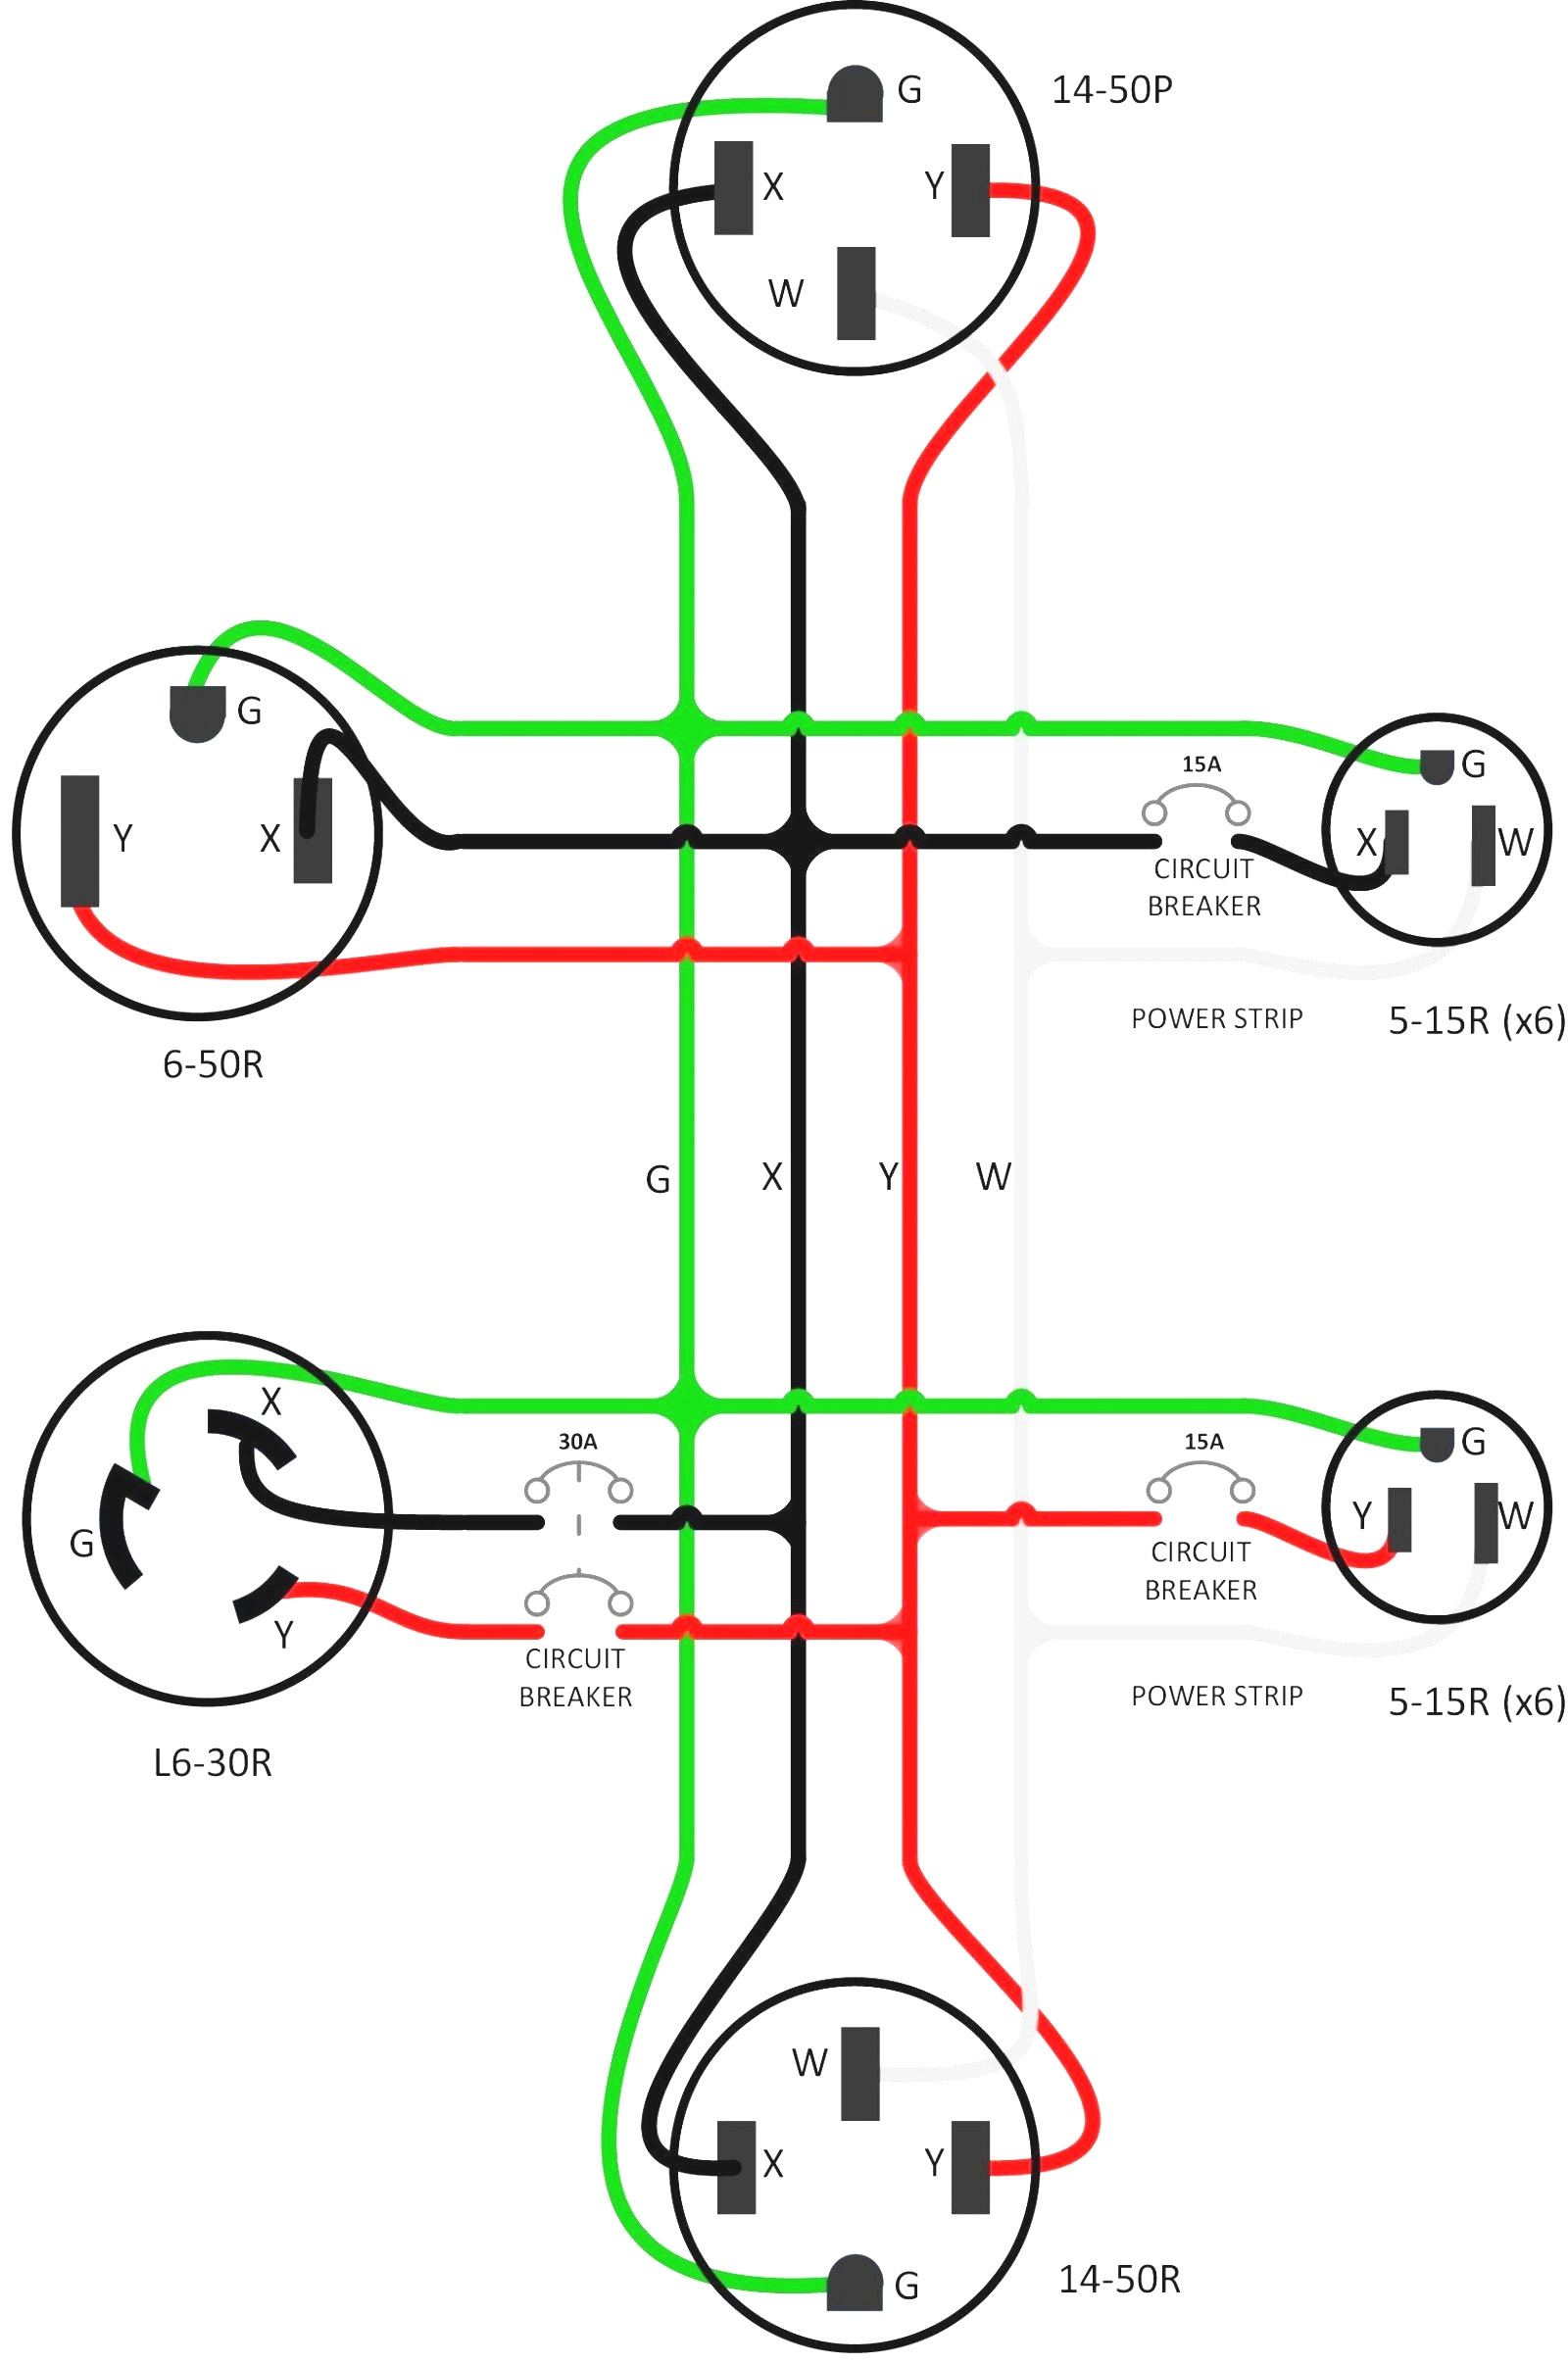 Nema Receptacle Wiring Diagram As Well Nema 6 20p Wiring Diagram